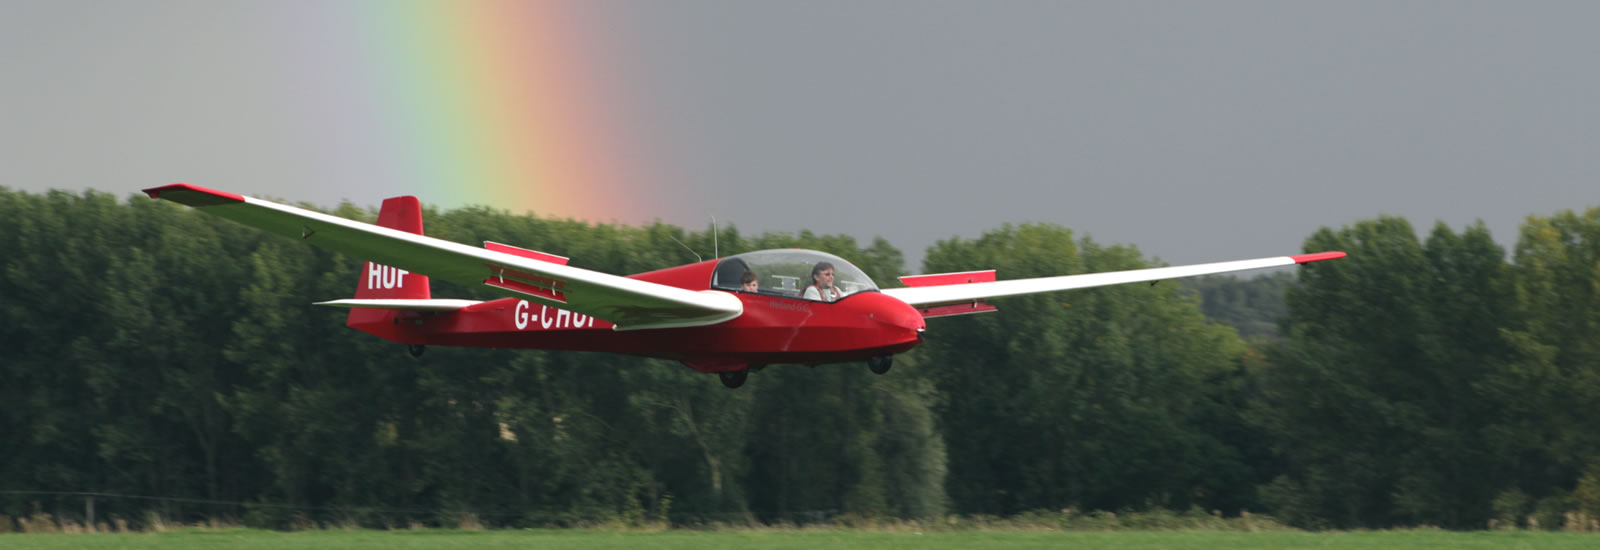 Welland Gliding Club Glider Landing With Rainbow Behind